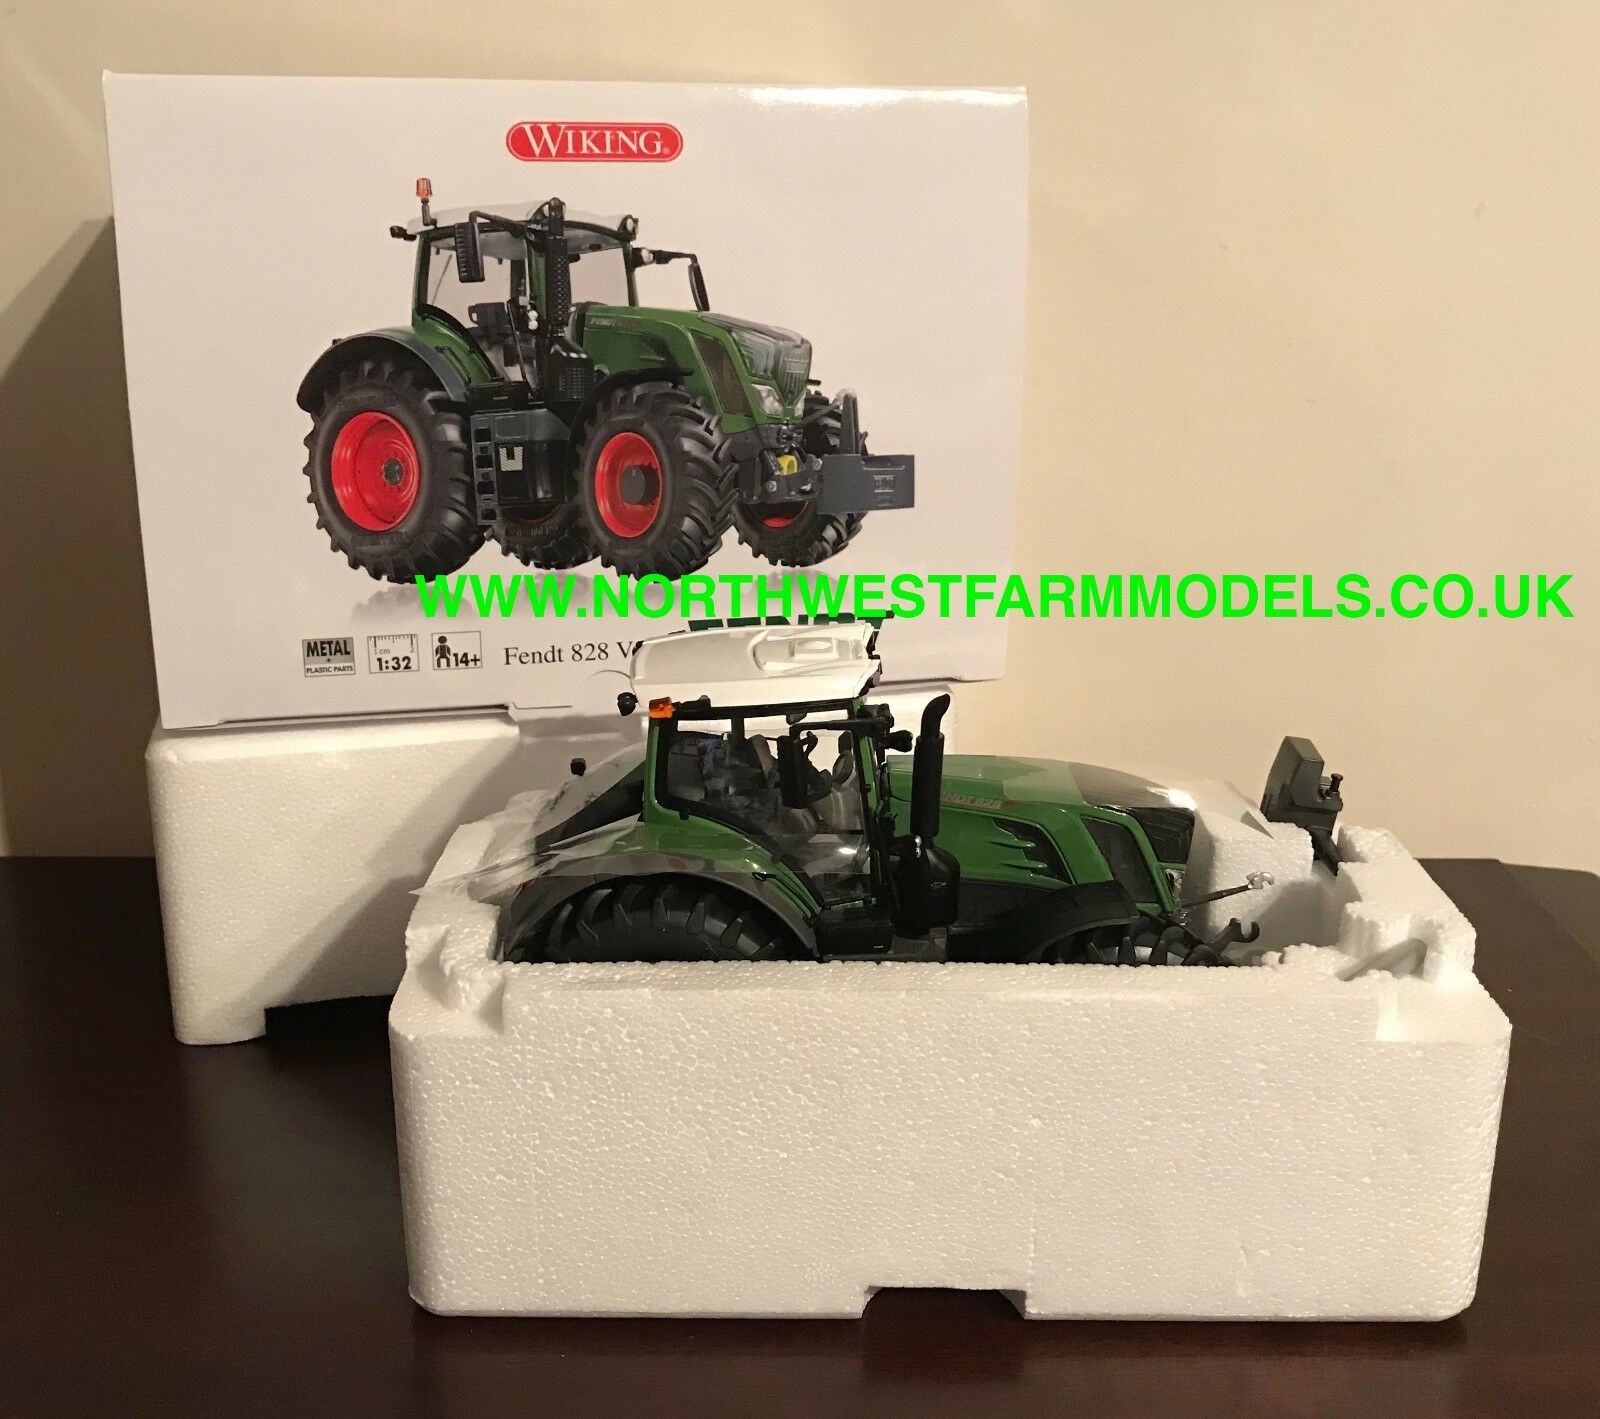 WIKING 1 32 SCALE FENDT 828 VARIO TRACTOR STANDARD GREEN (SEALED BOX)